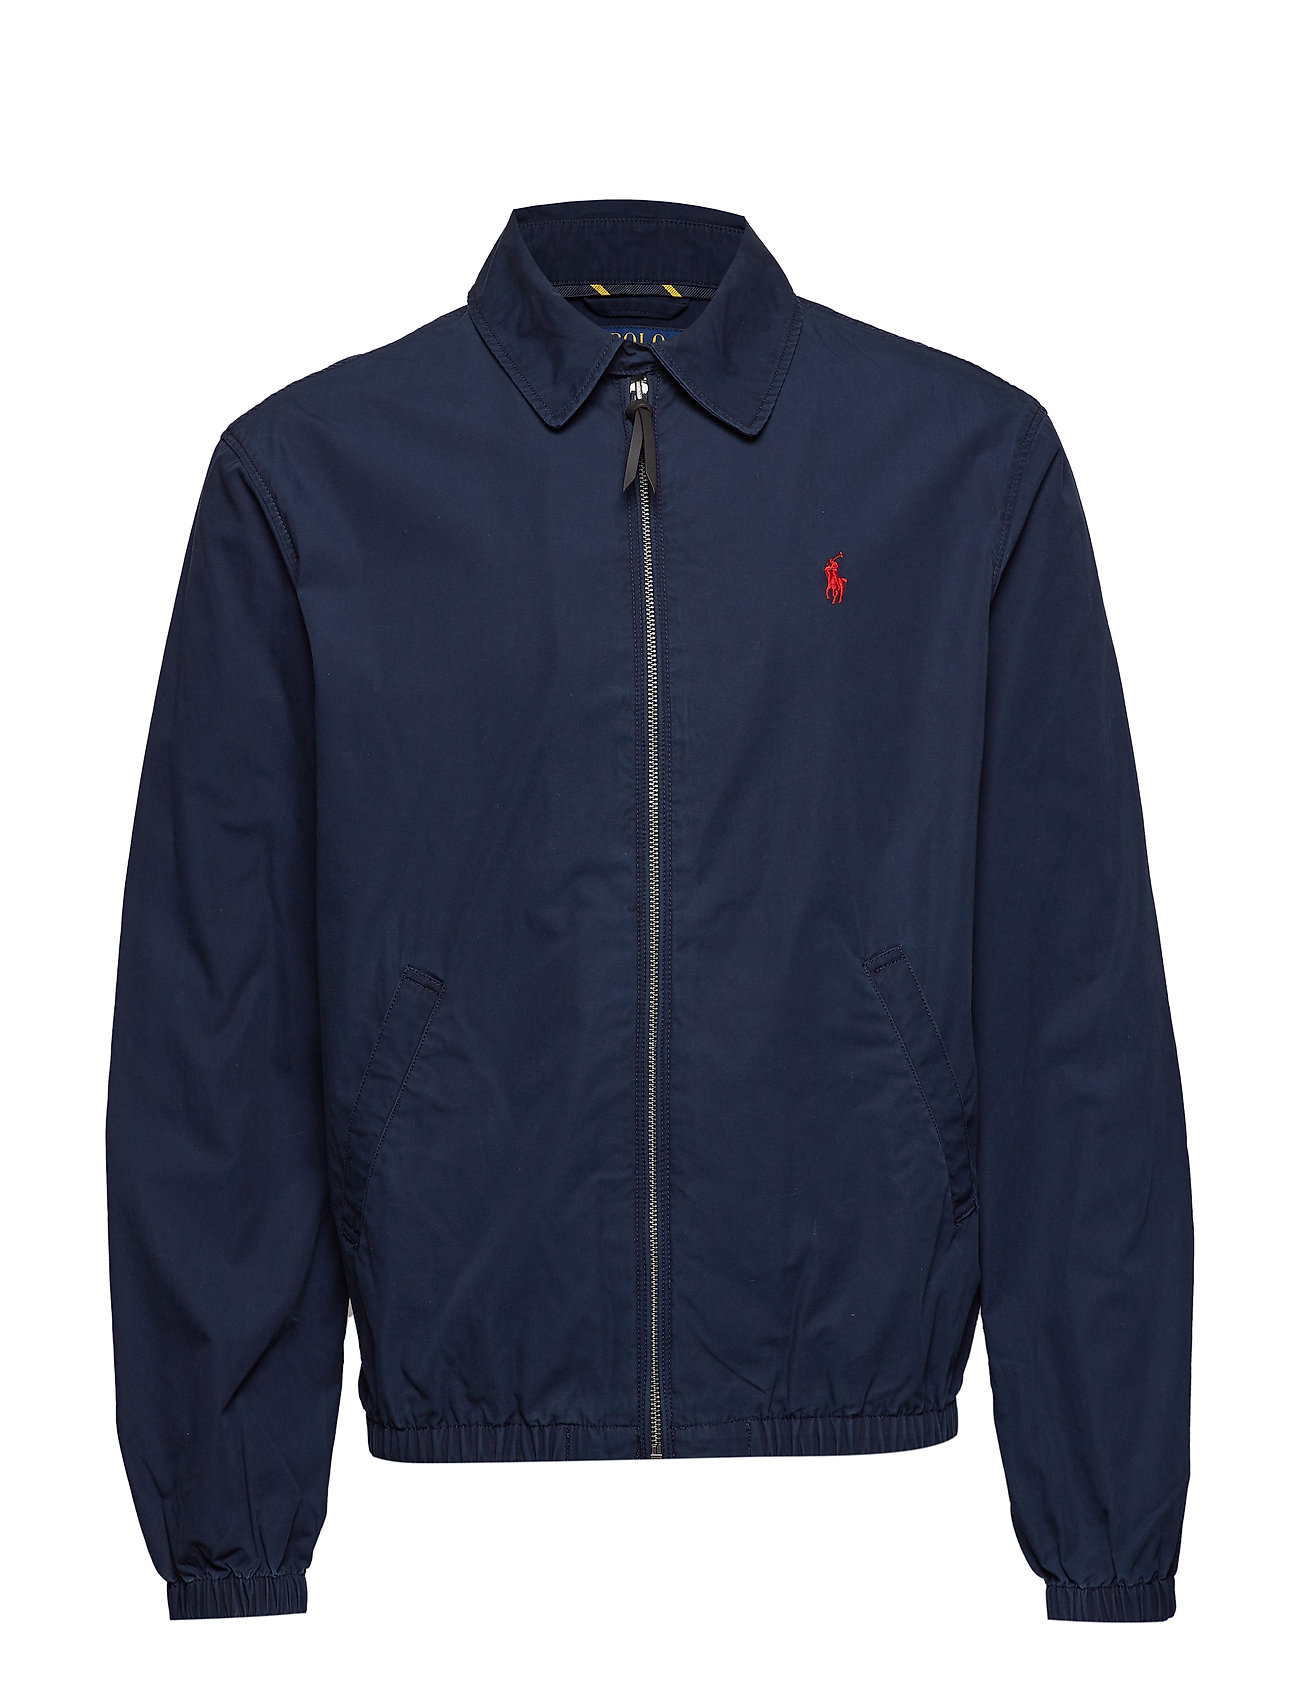 Polo Ralph Lauren Bayport Cotton Windbreaker - AVIATOR NAVY